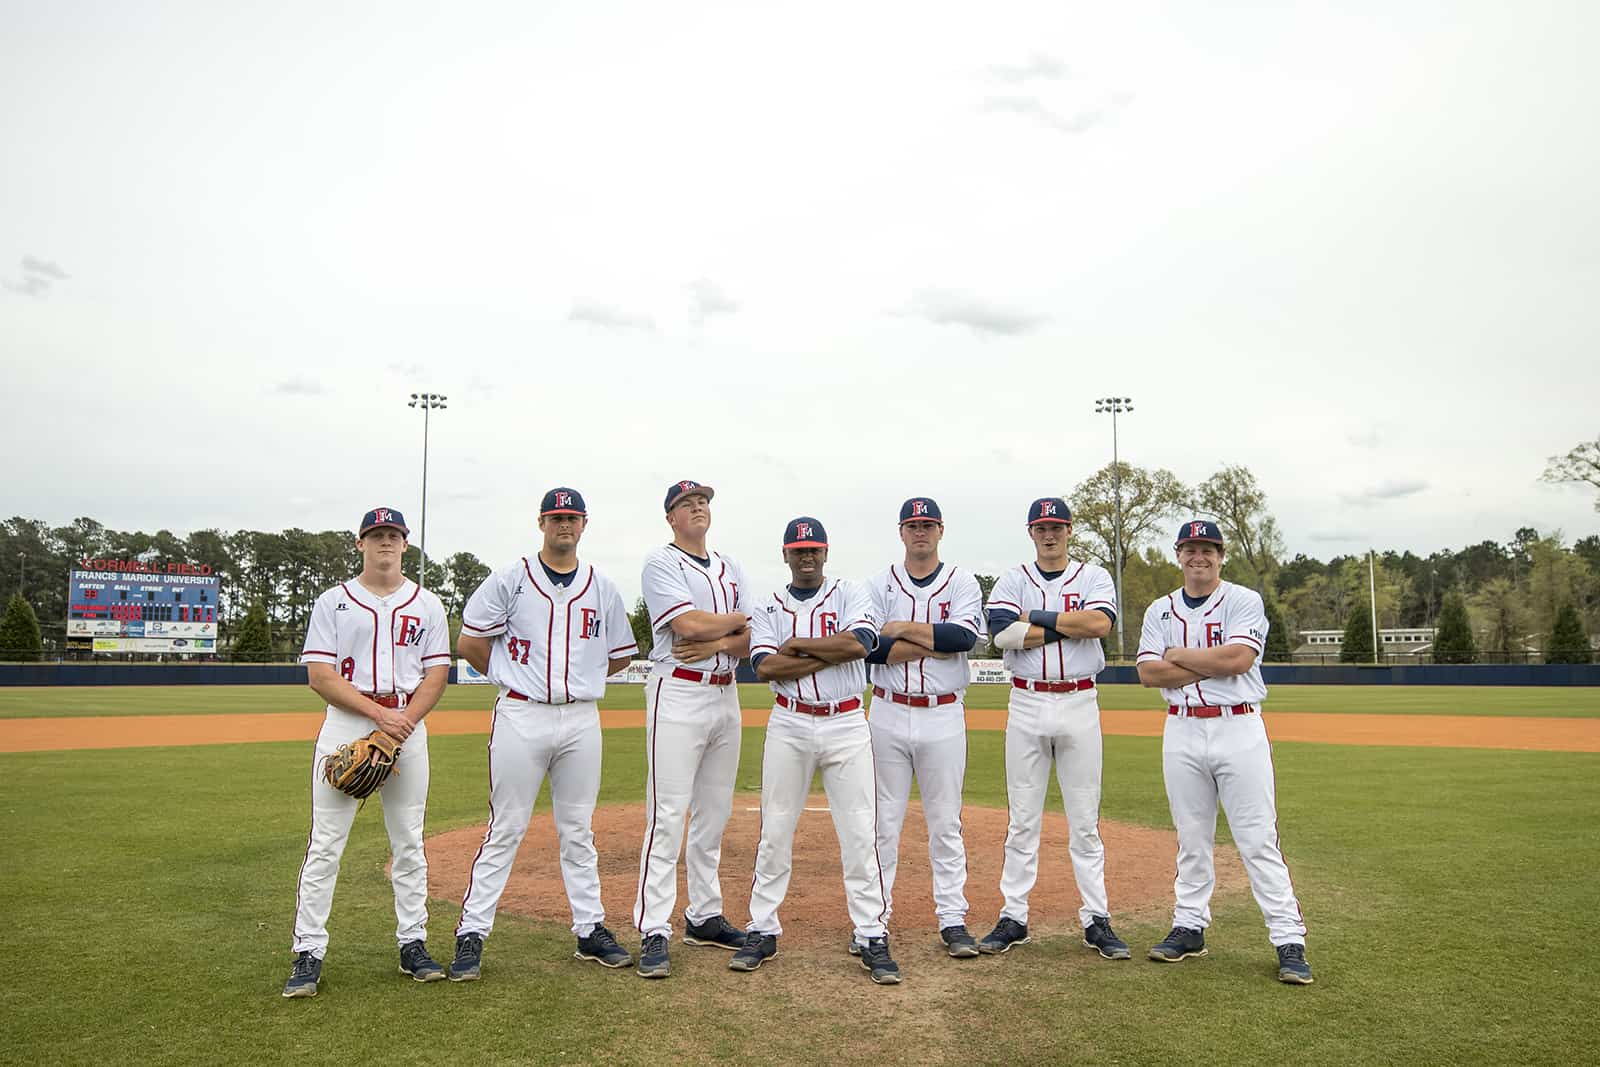 FMU Baseball vs Queens (NC)